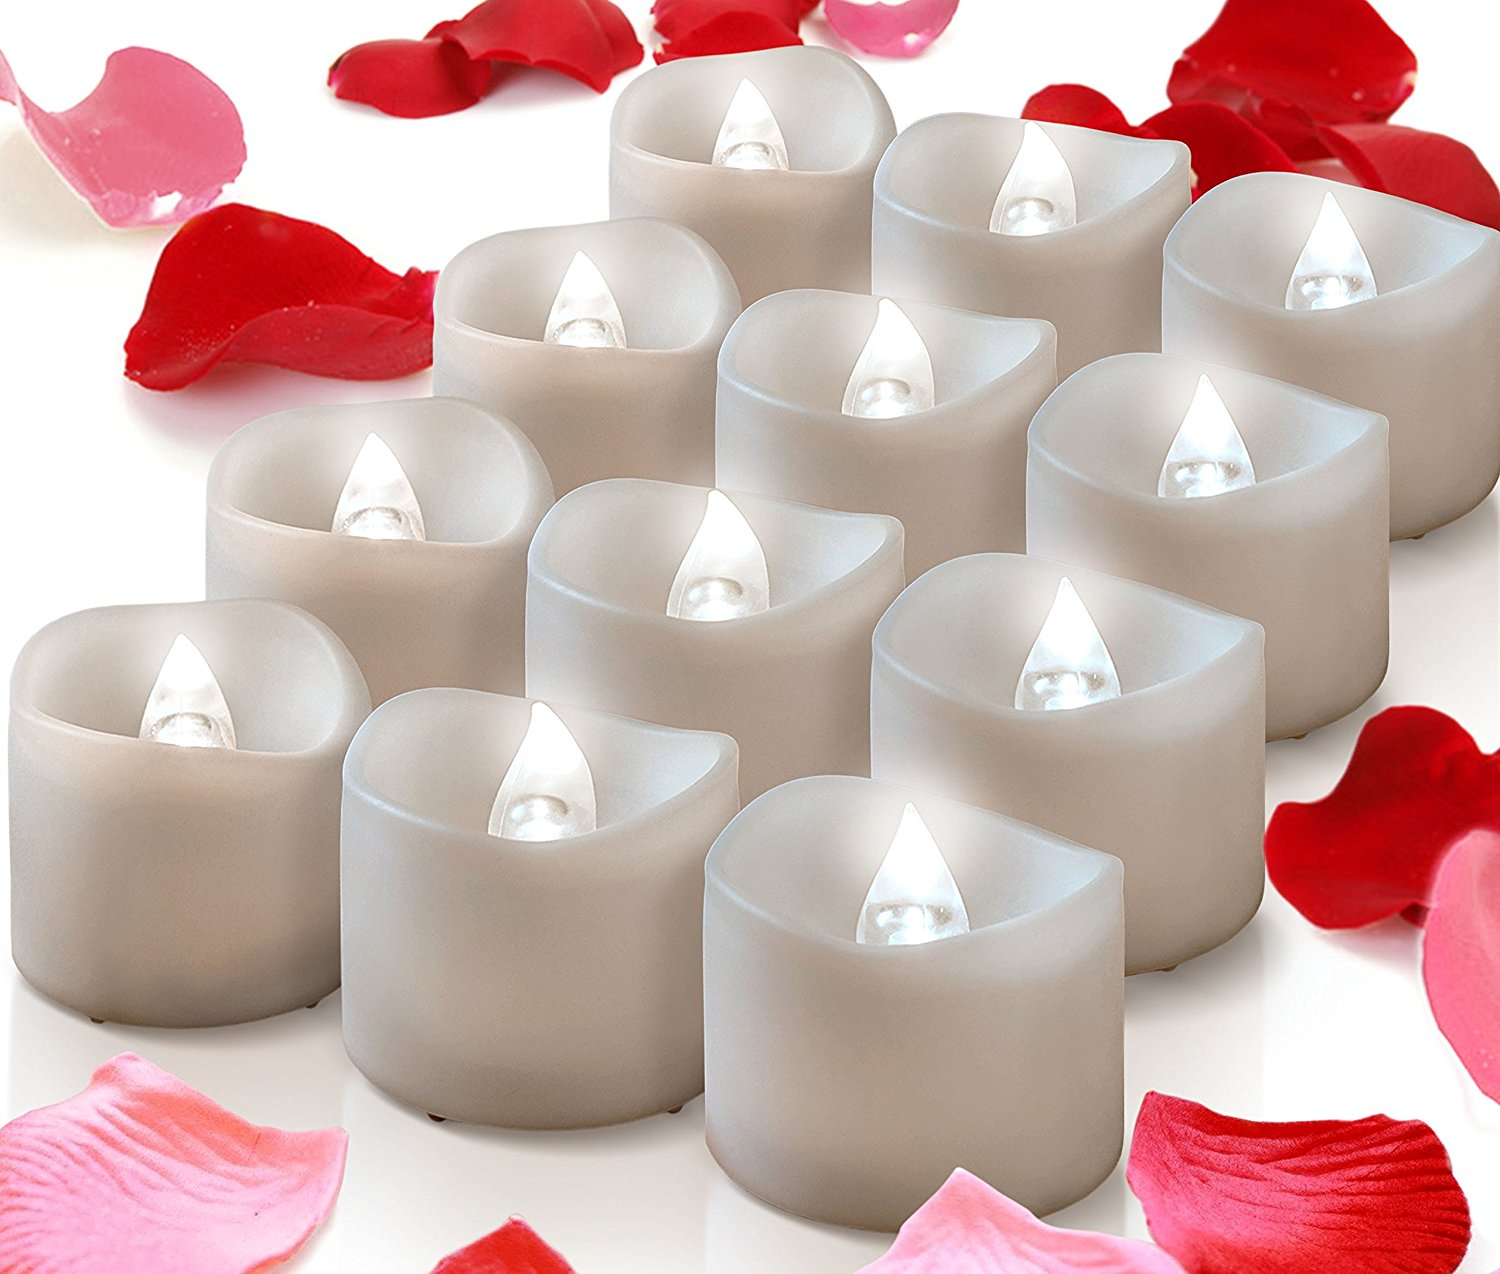 Buy Mars Flameless Candles 12 White Bright Battery Operated Tea Lights Romantic Unscented Fake Rose Petals Bulk For Votives Tealight Holders Fall Decor Valentines Day Halloween Christmas Decor In Cheap